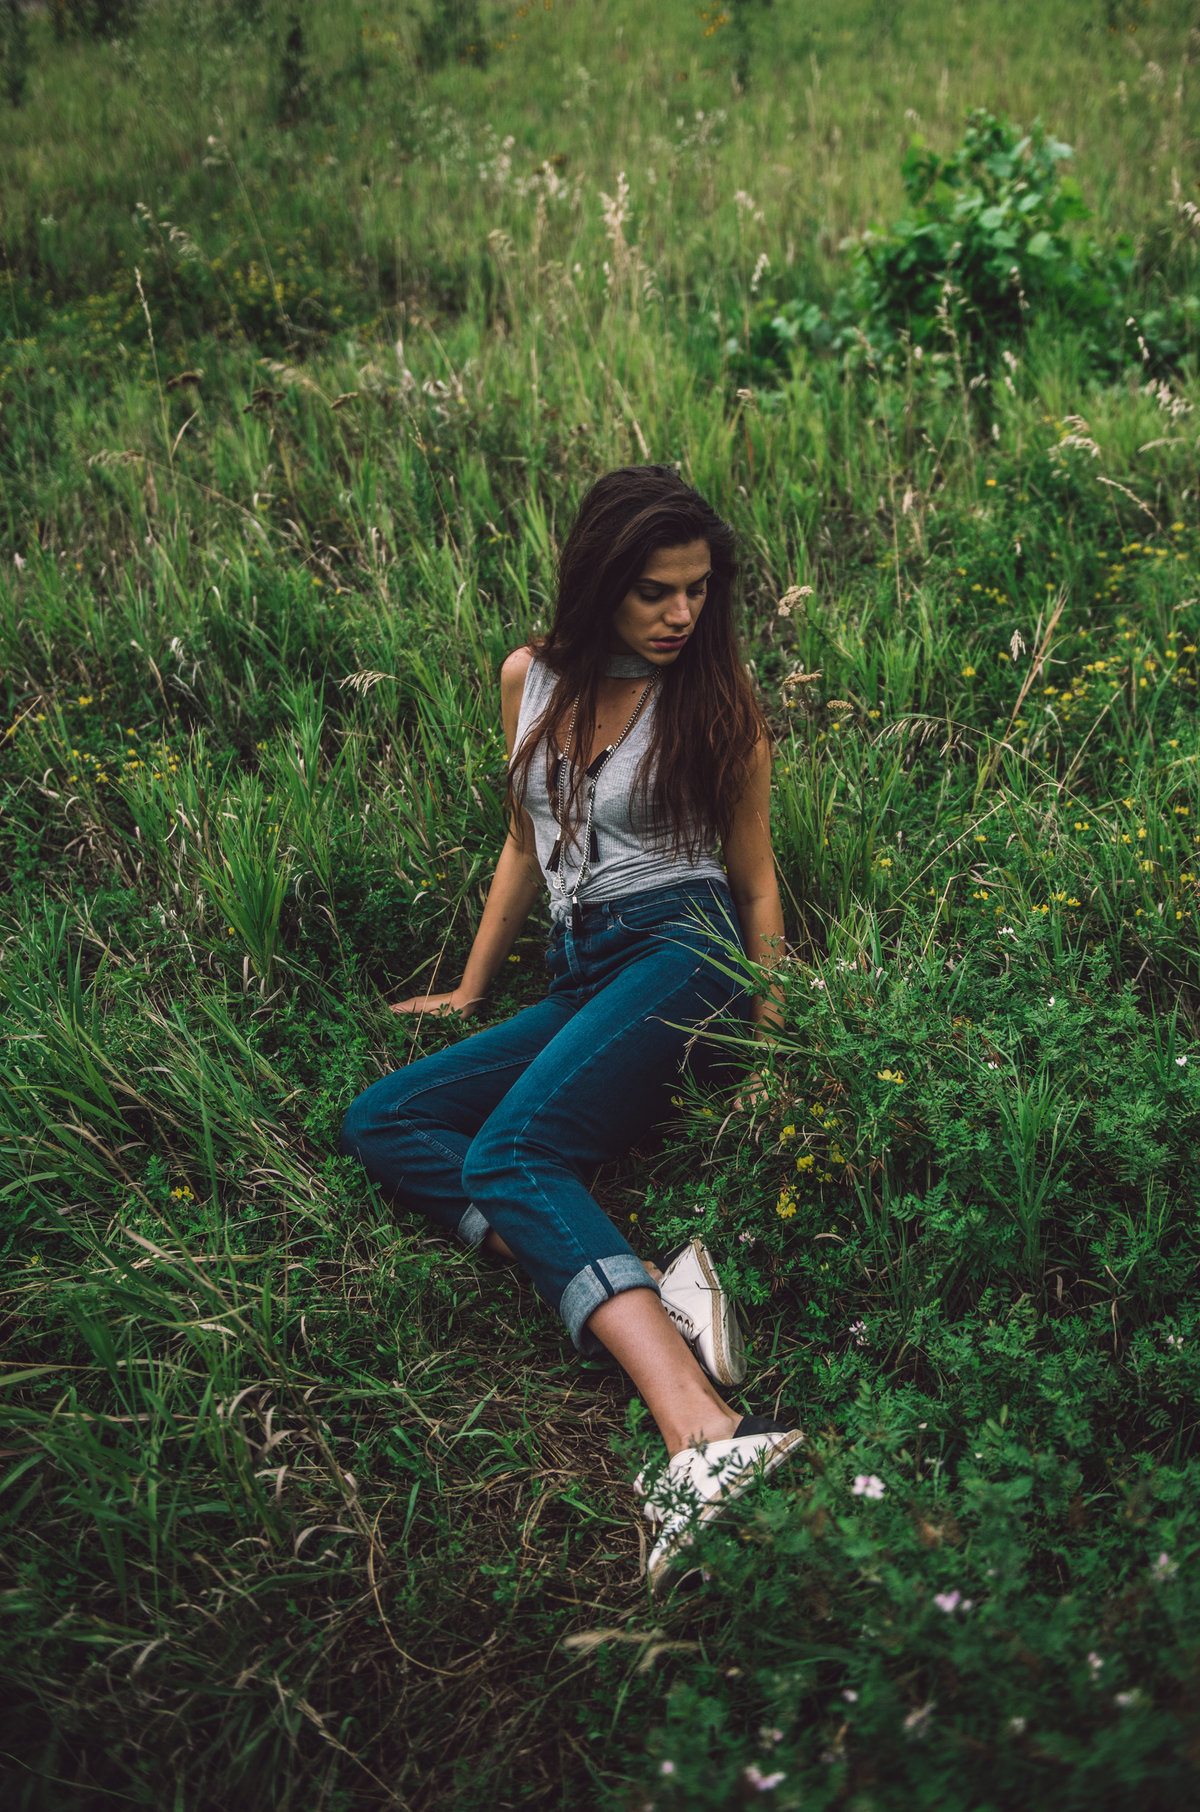 Gril n jeans sitting in grass